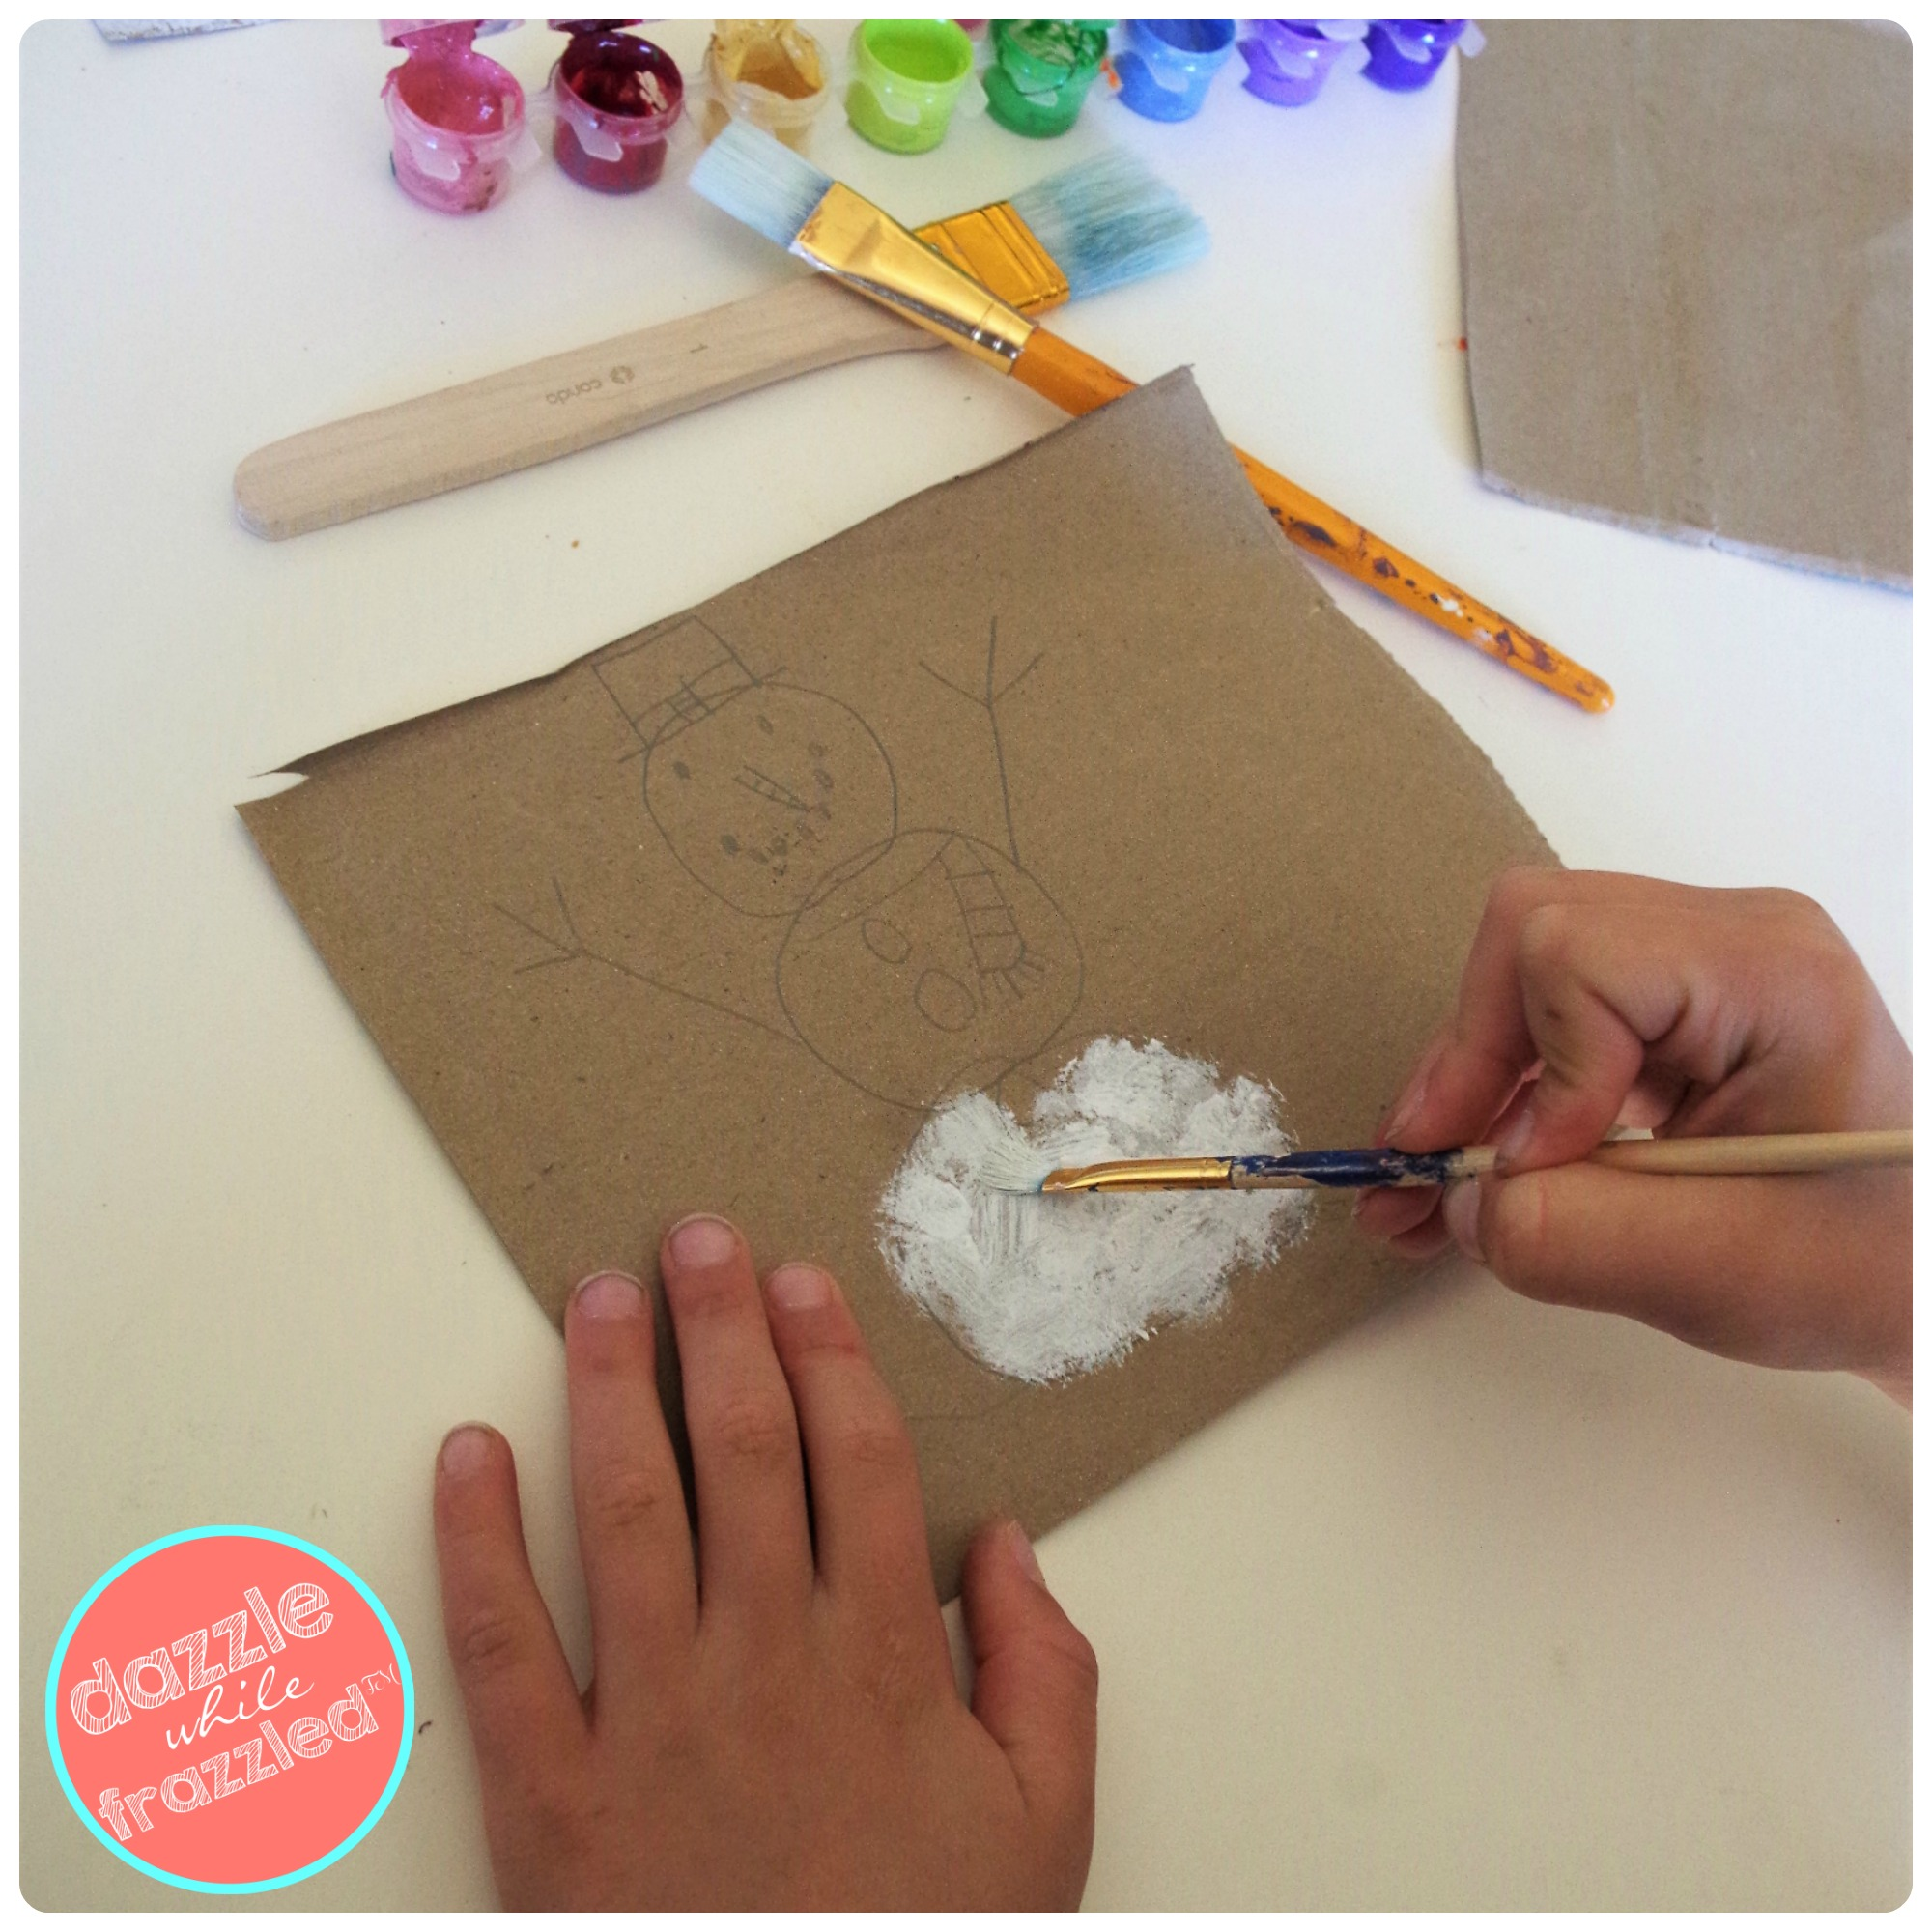 How to make quick and easy winter snowman painting craft with kids using brown paper grocery bag canvases.